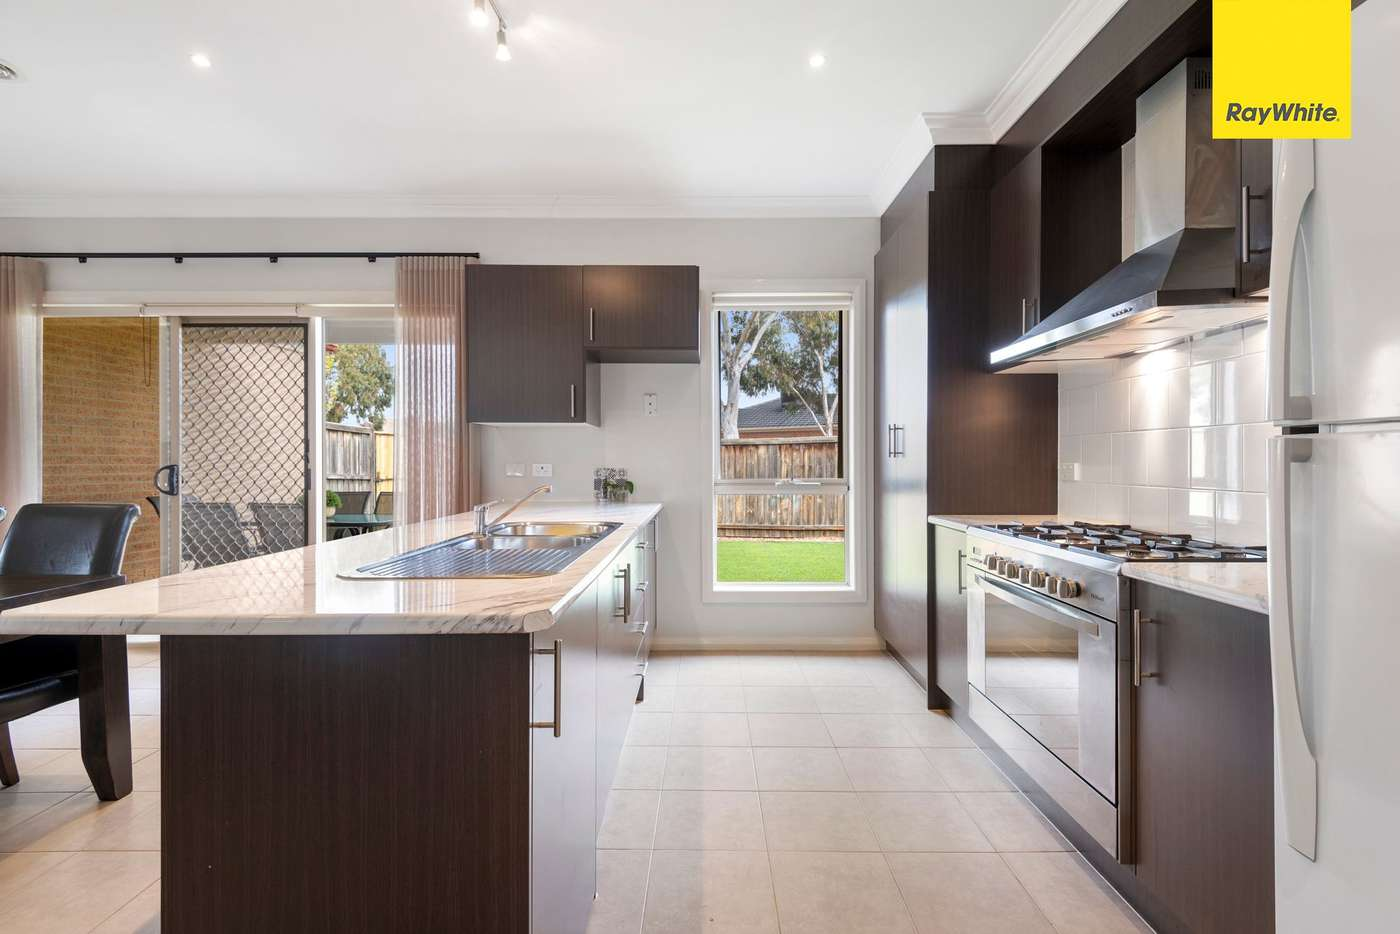 Sixth view of Homely house listing, 25 Long Tree Drive, Harkness VIC 3337